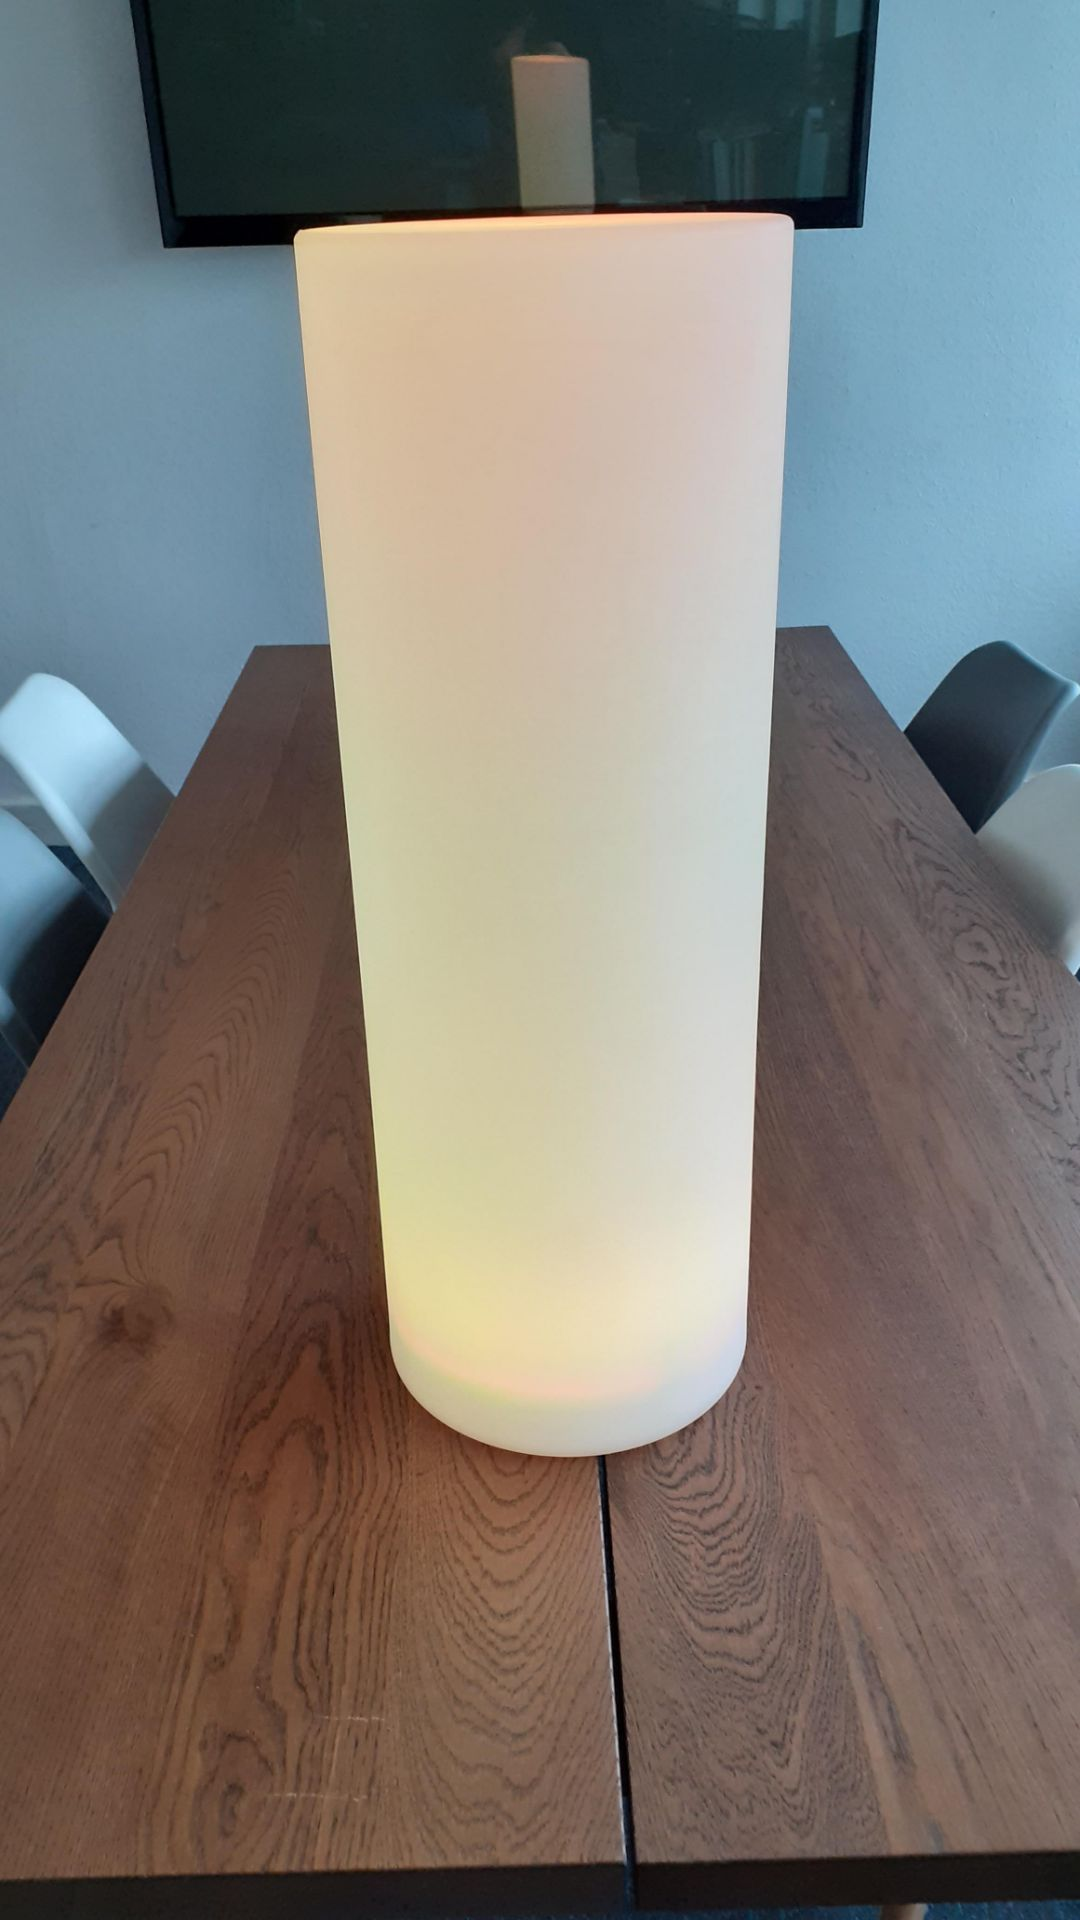 A Playlearn SLUF 70cm Light Up Cylinder with Power Supply and Remote Control (good condition, - Image 6 of 10